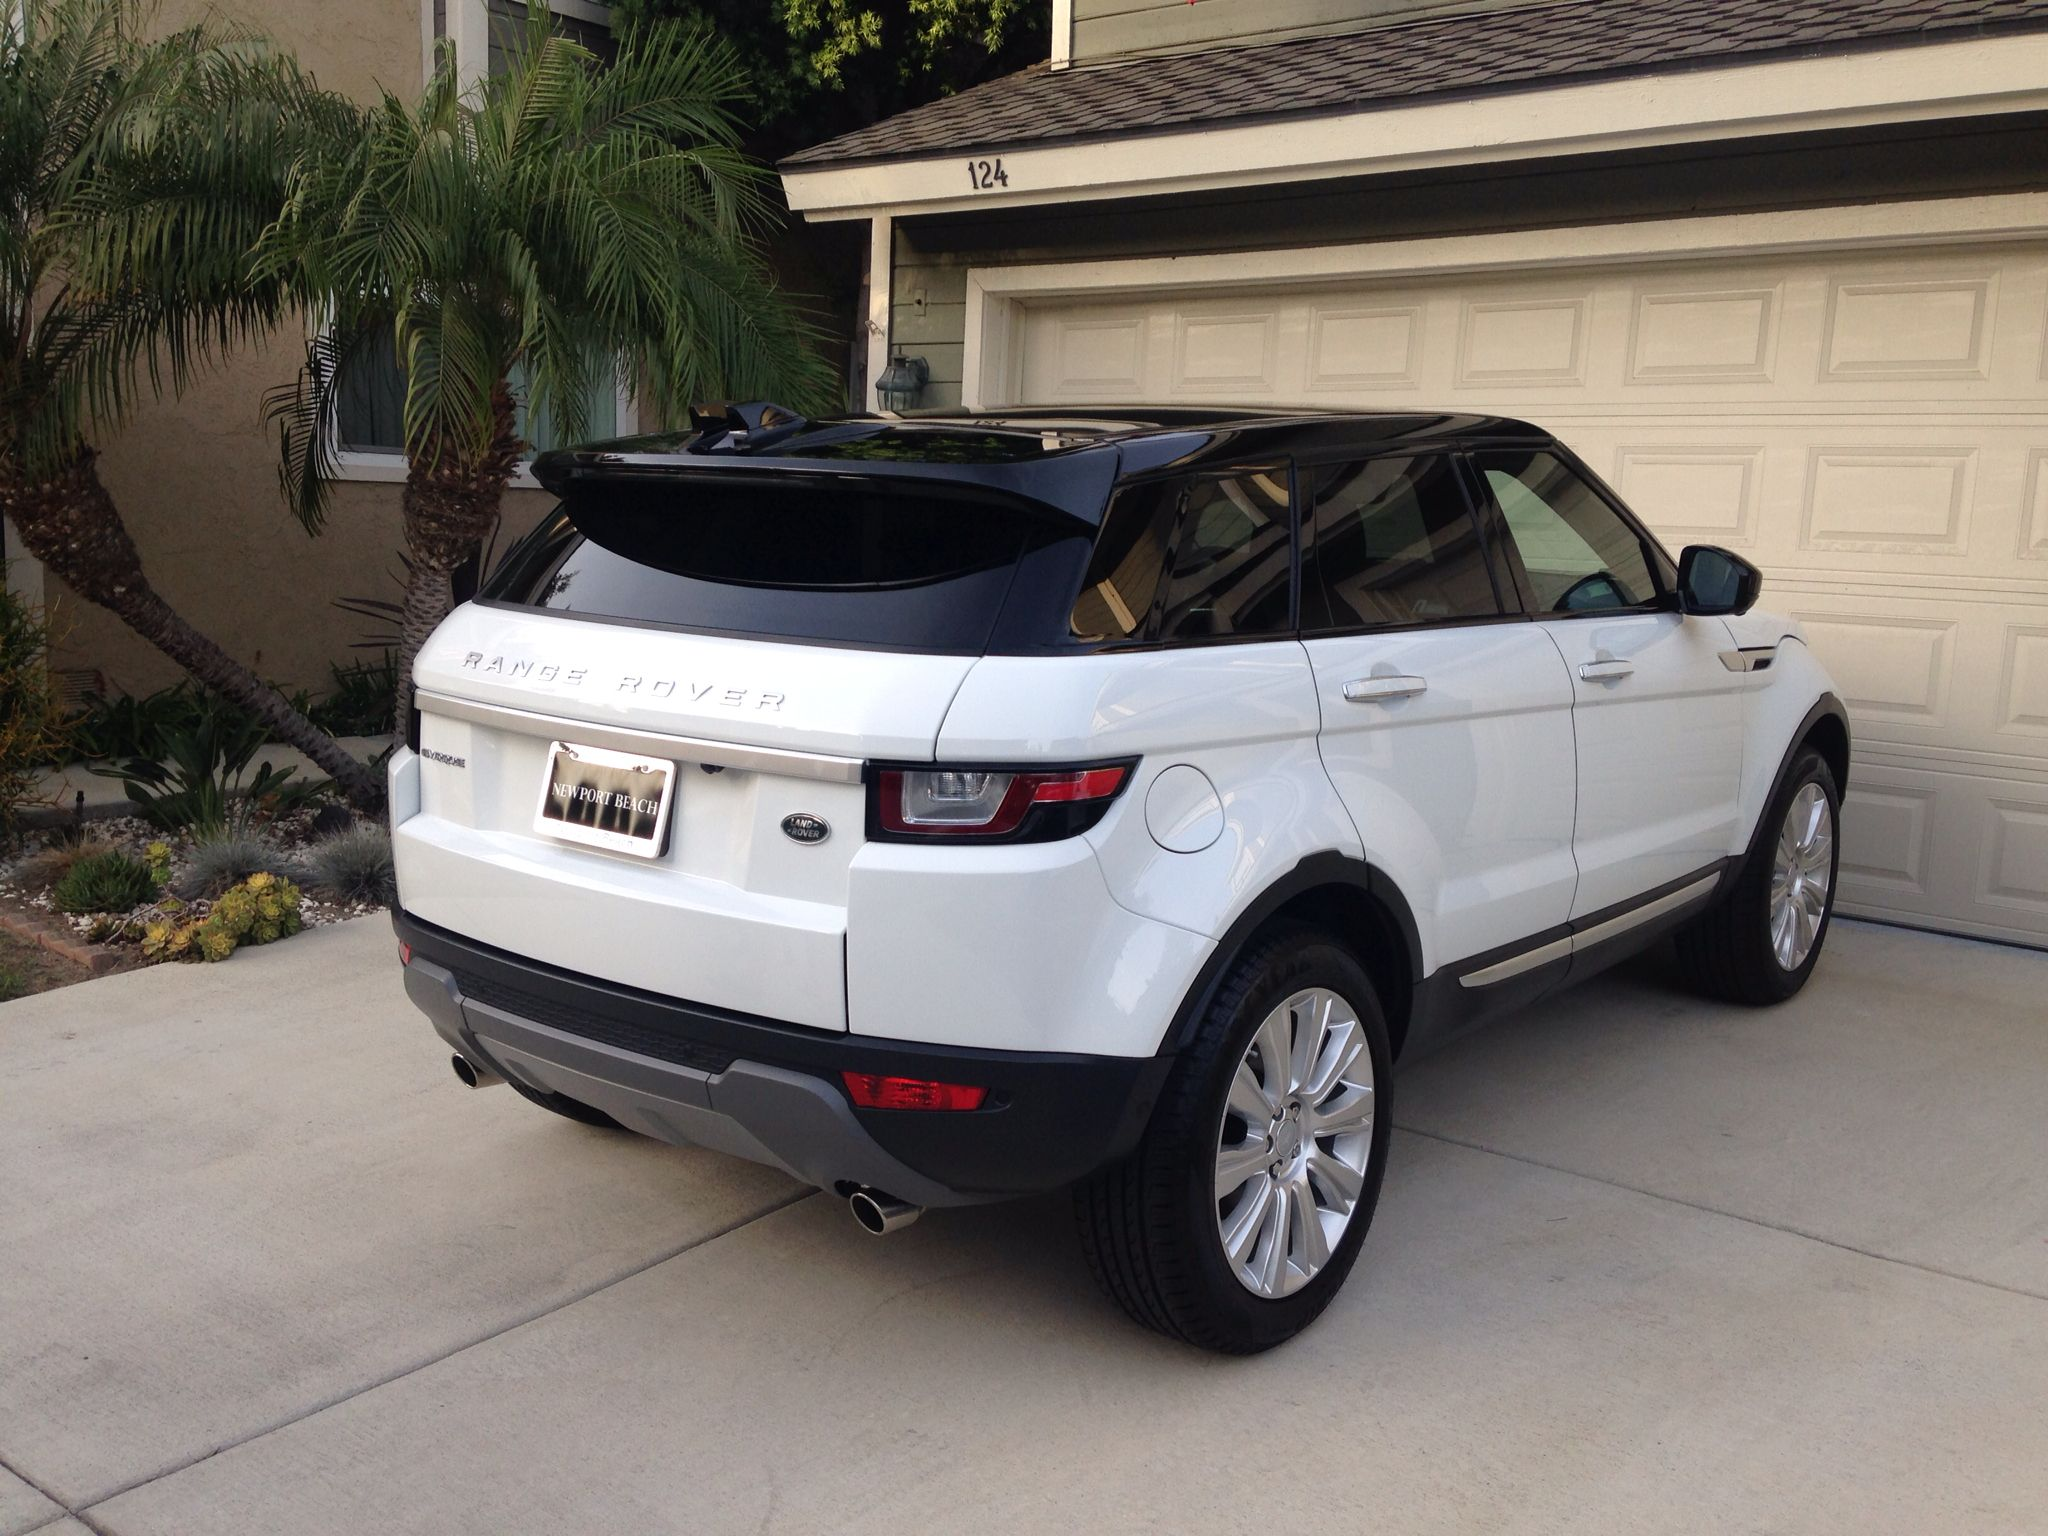 2016 Range Rover Evoque HSE fully loaded So stoked